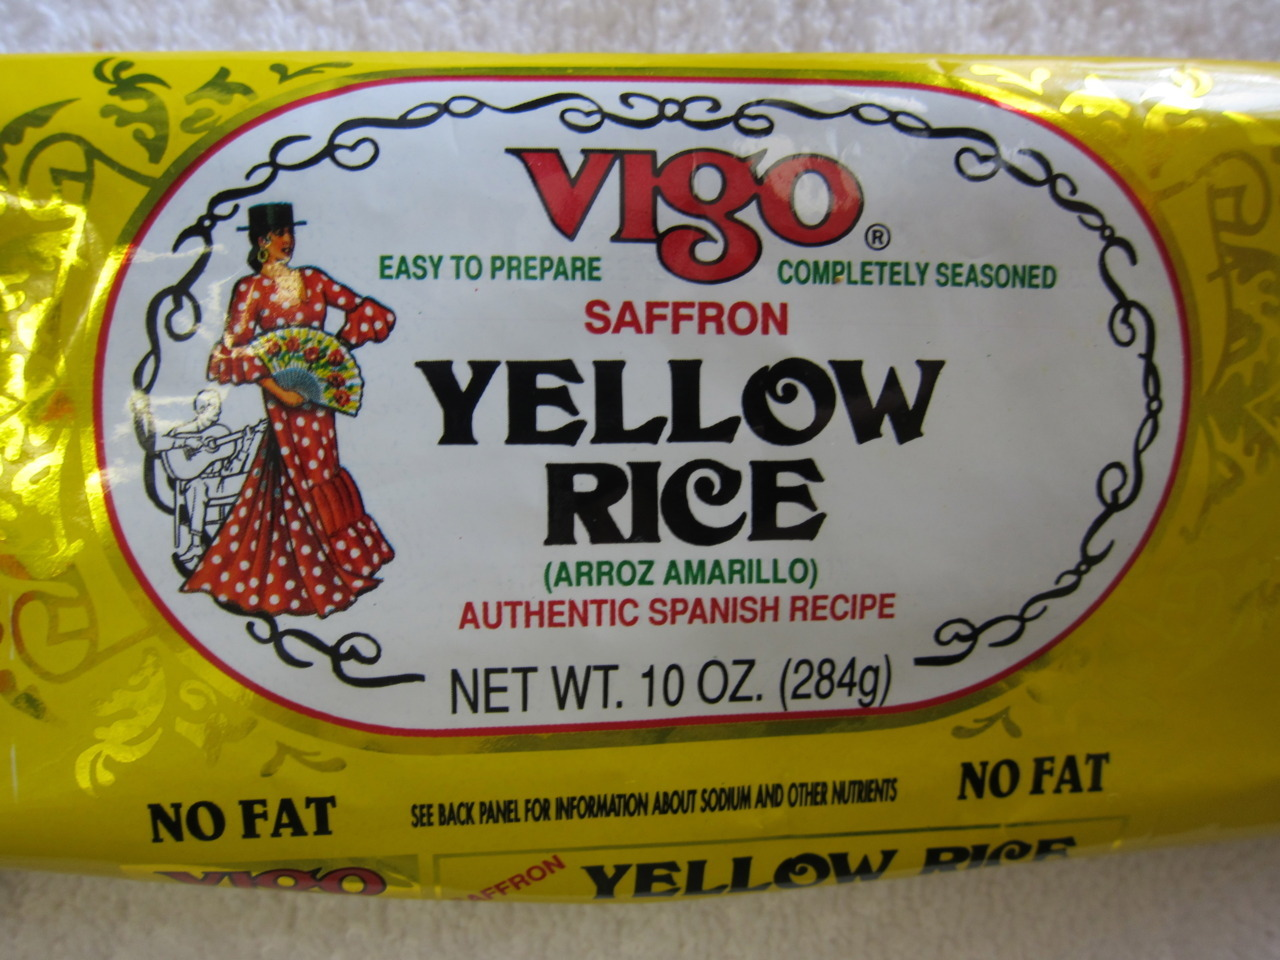 How much cheaper could this package be than simply brown rice and saffron? It is chock full of artificial colorings and additives like MSG…I give this package a time-out. Yup, that's right I will be rating food items with either a gold star or a time-out to illustrate weather they meet Lunch Lady Laura's standards for healthy happy kids.